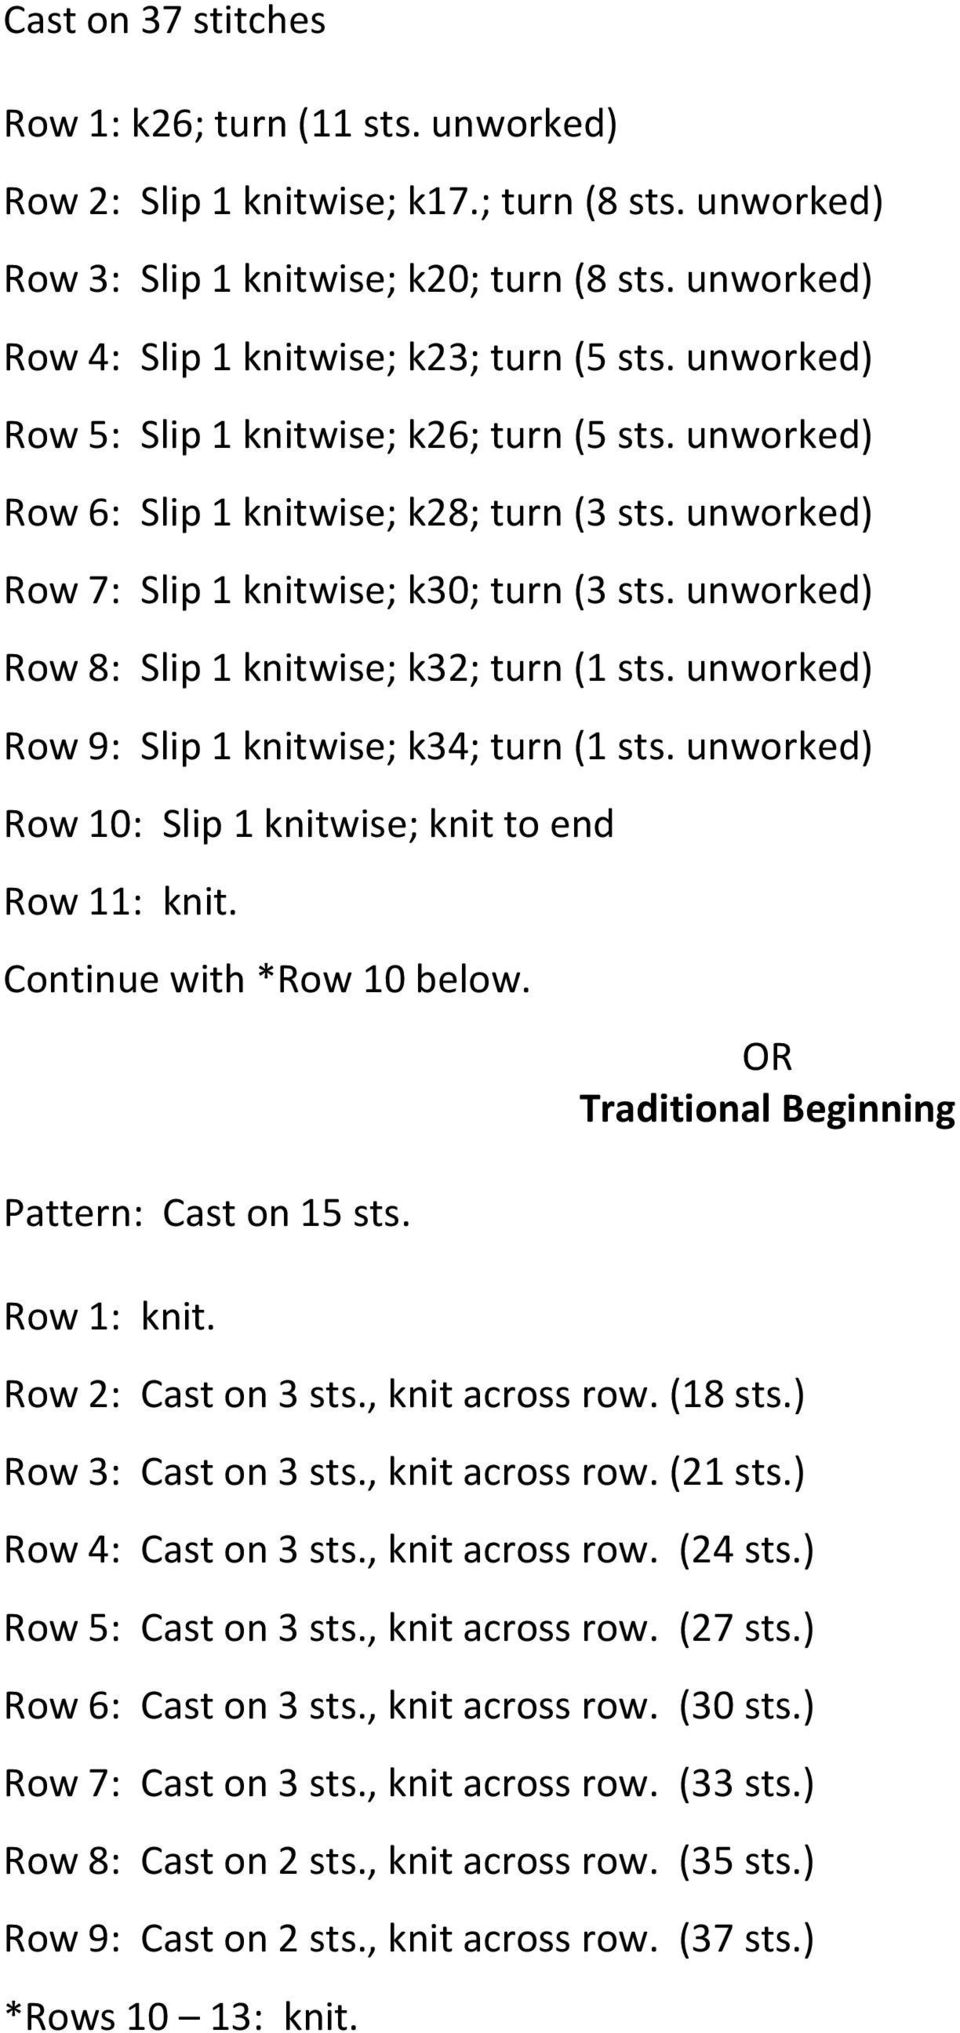 unworked) Row 7: Slip 1 knitwise; k30; turn (3 sts. unworked) Row 8: Slip 1 knitwise; k32; turn (1 sts. unworked) Row 9: Slip 1 knitwise; k34; turn (1 sts.